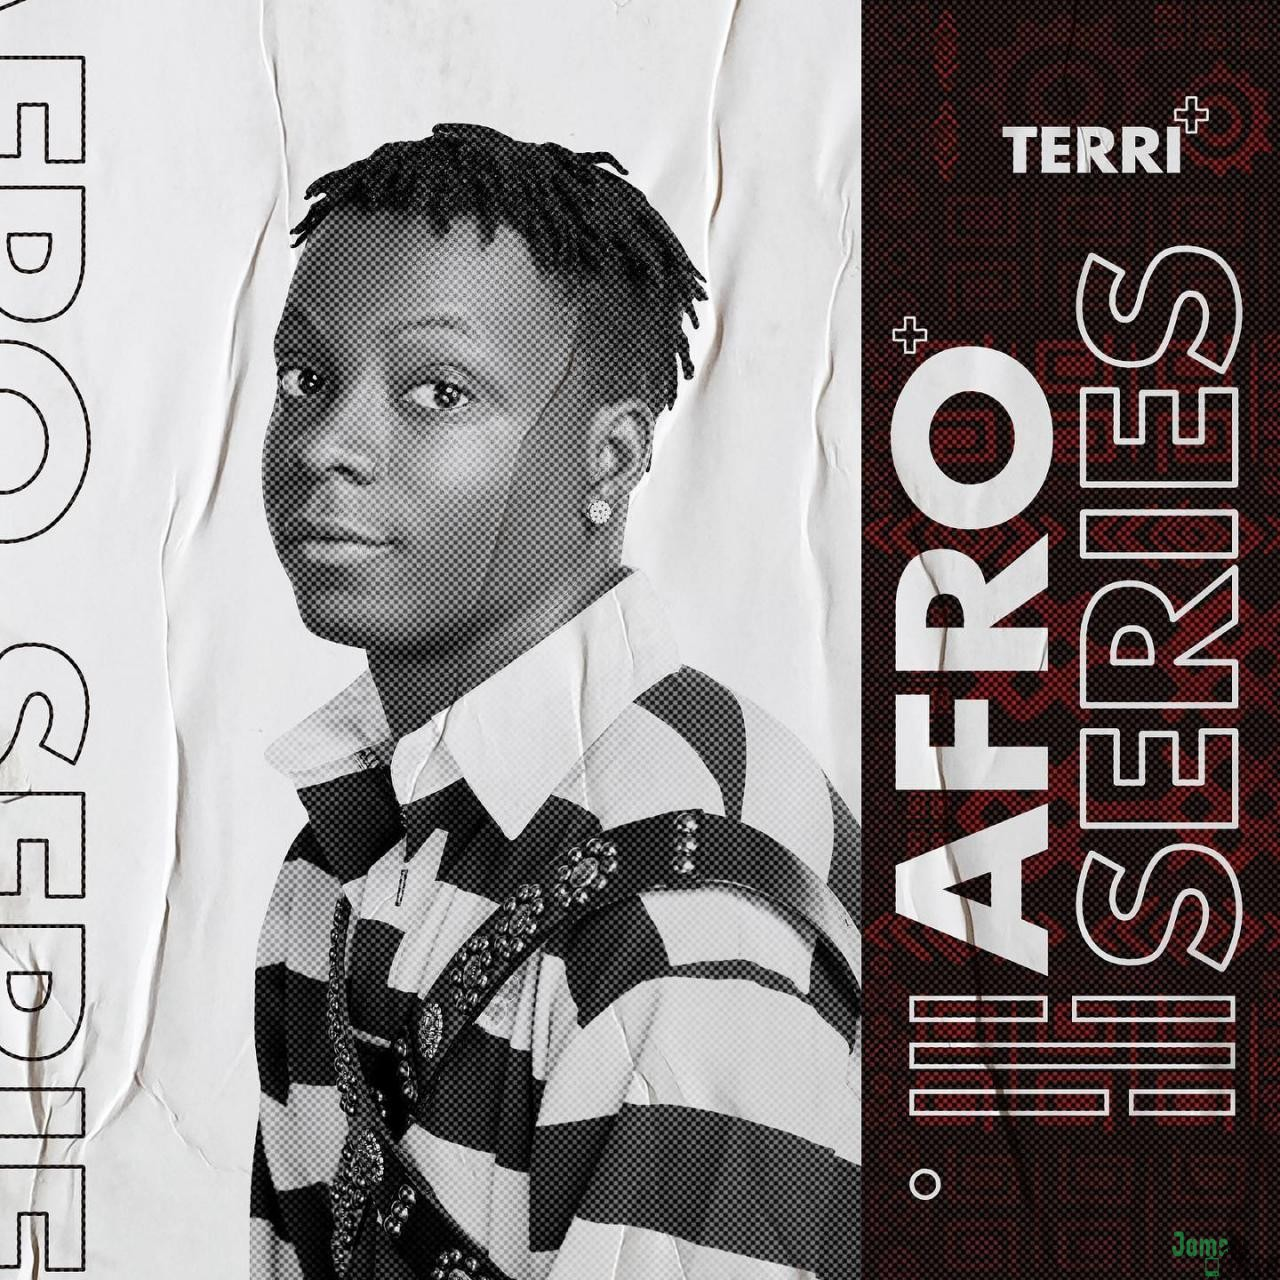 Download Terri – Balance